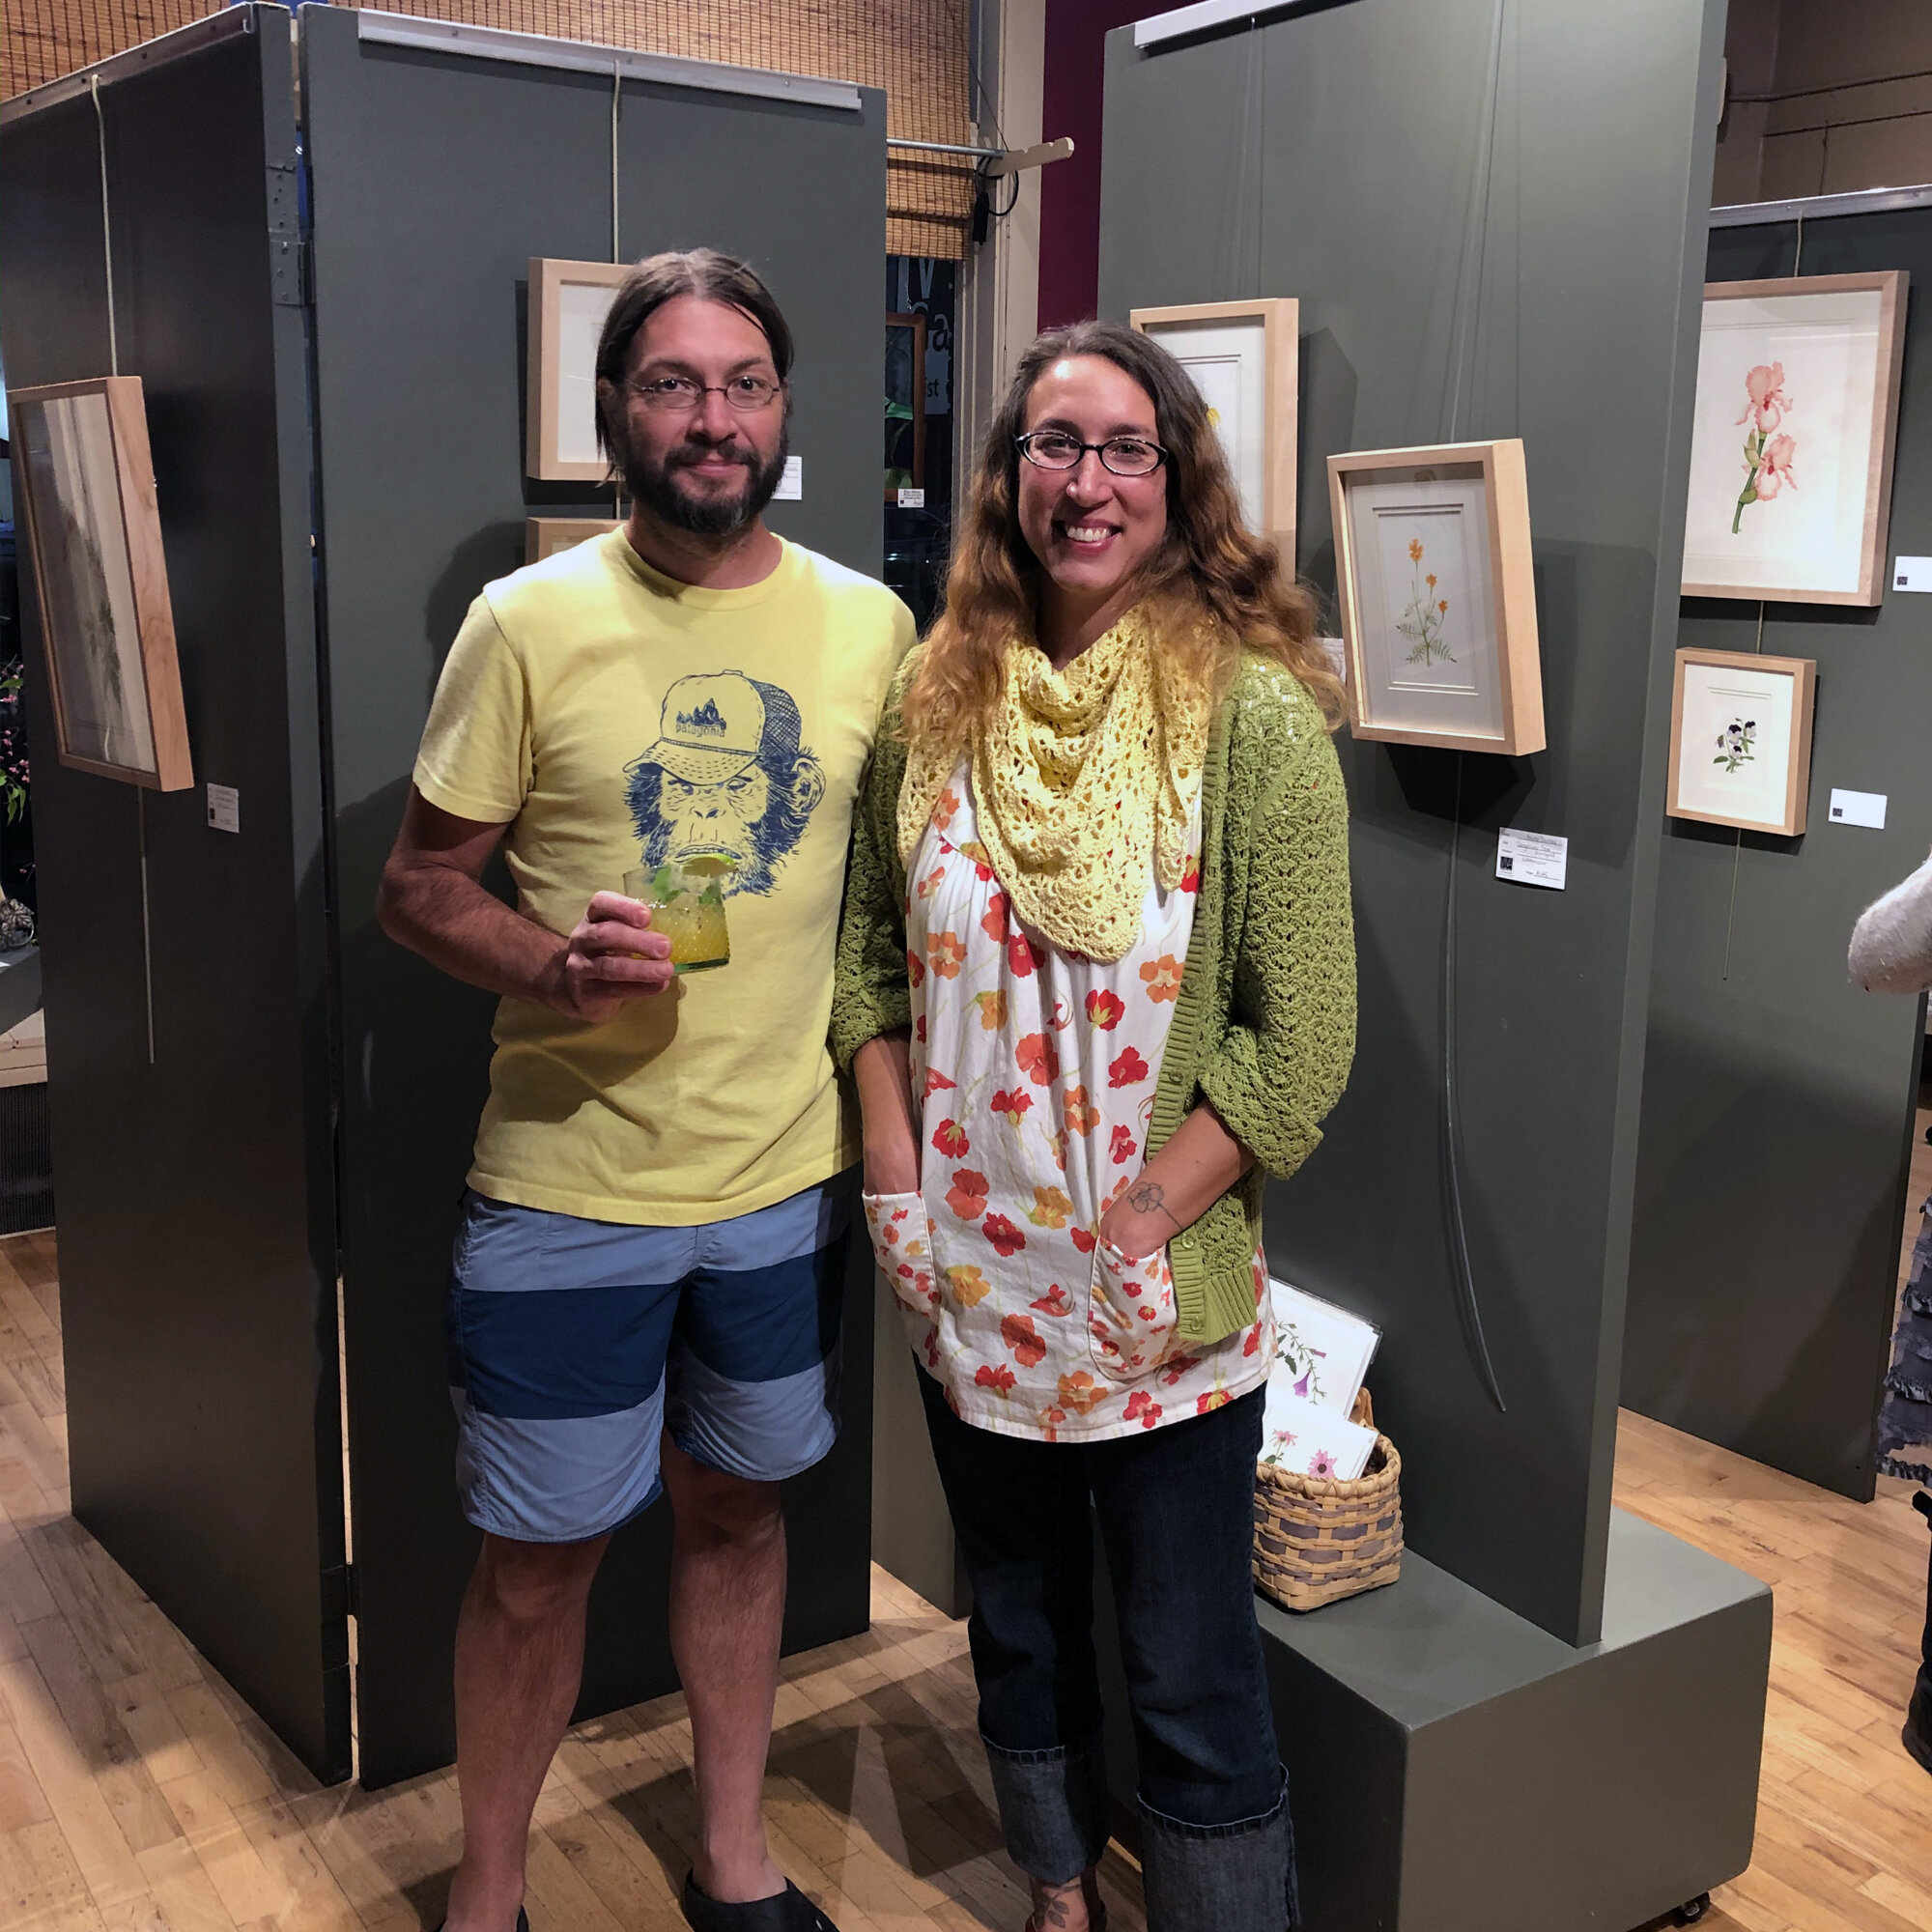 Anne Butera and Her Husband Matthias Minnig at the Opening Reception of Anne's Show at Viva Gallery in Viroqua Wisconsin